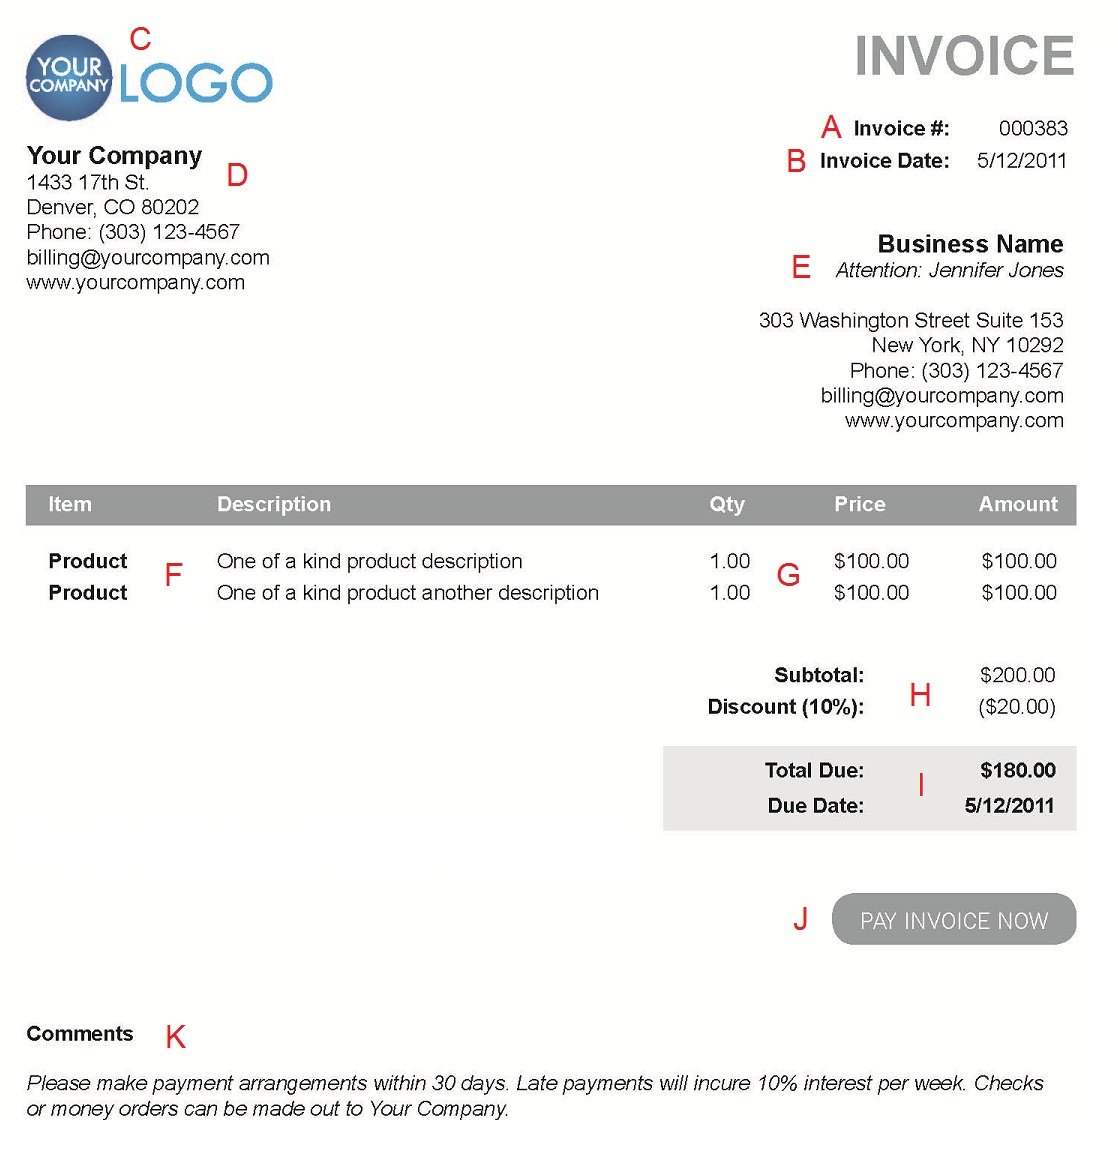 Pxworkoutfreeus  Terrific The  Different Sections Of An Electronic Payment Invoice With Handsome A  With Lovely Receipt Book Template Word Also Lic Policy Premium Payment Receipt Online In Addition Car Sale Receipt Pdf And Where Is Tracking Number On Post Office Receipt As Well As Rent Receipt Generator Additionally Till Receipt Template From Paysimplecom With Pxworkoutfreeus  Handsome The  Different Sections Of An Electronic Payment Invoice With Lovely A  And Terrific Receipt Book Template Word Also Lic Policy Premium Payment Receipt Online In Addition Car Sale Receipt Pdf From Paysimplecom